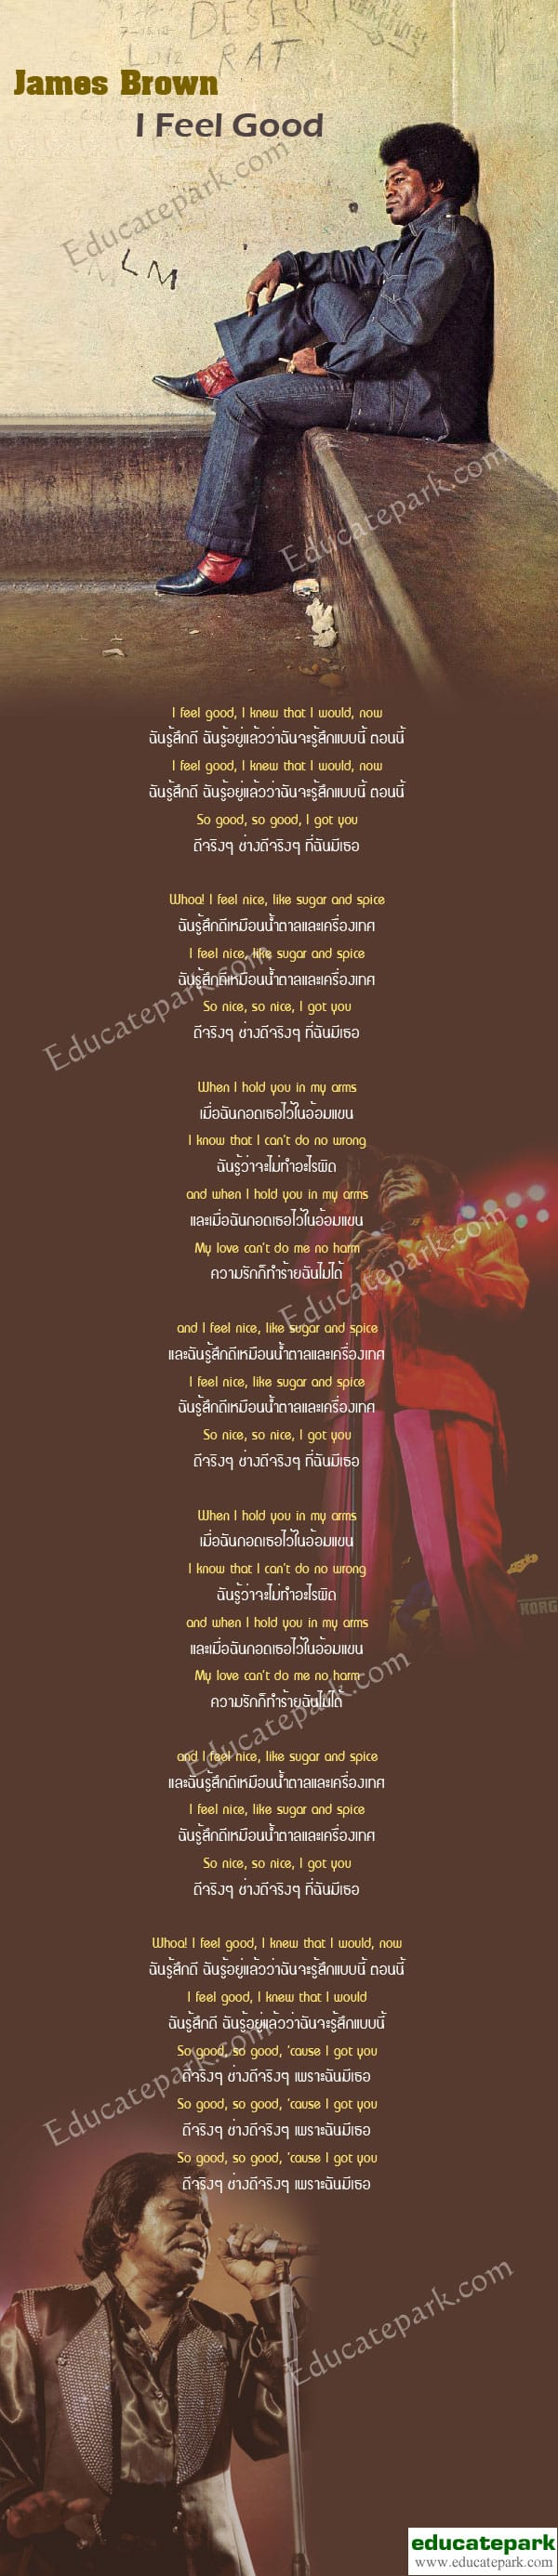 แปลเพลง I Feel Good - James Brown